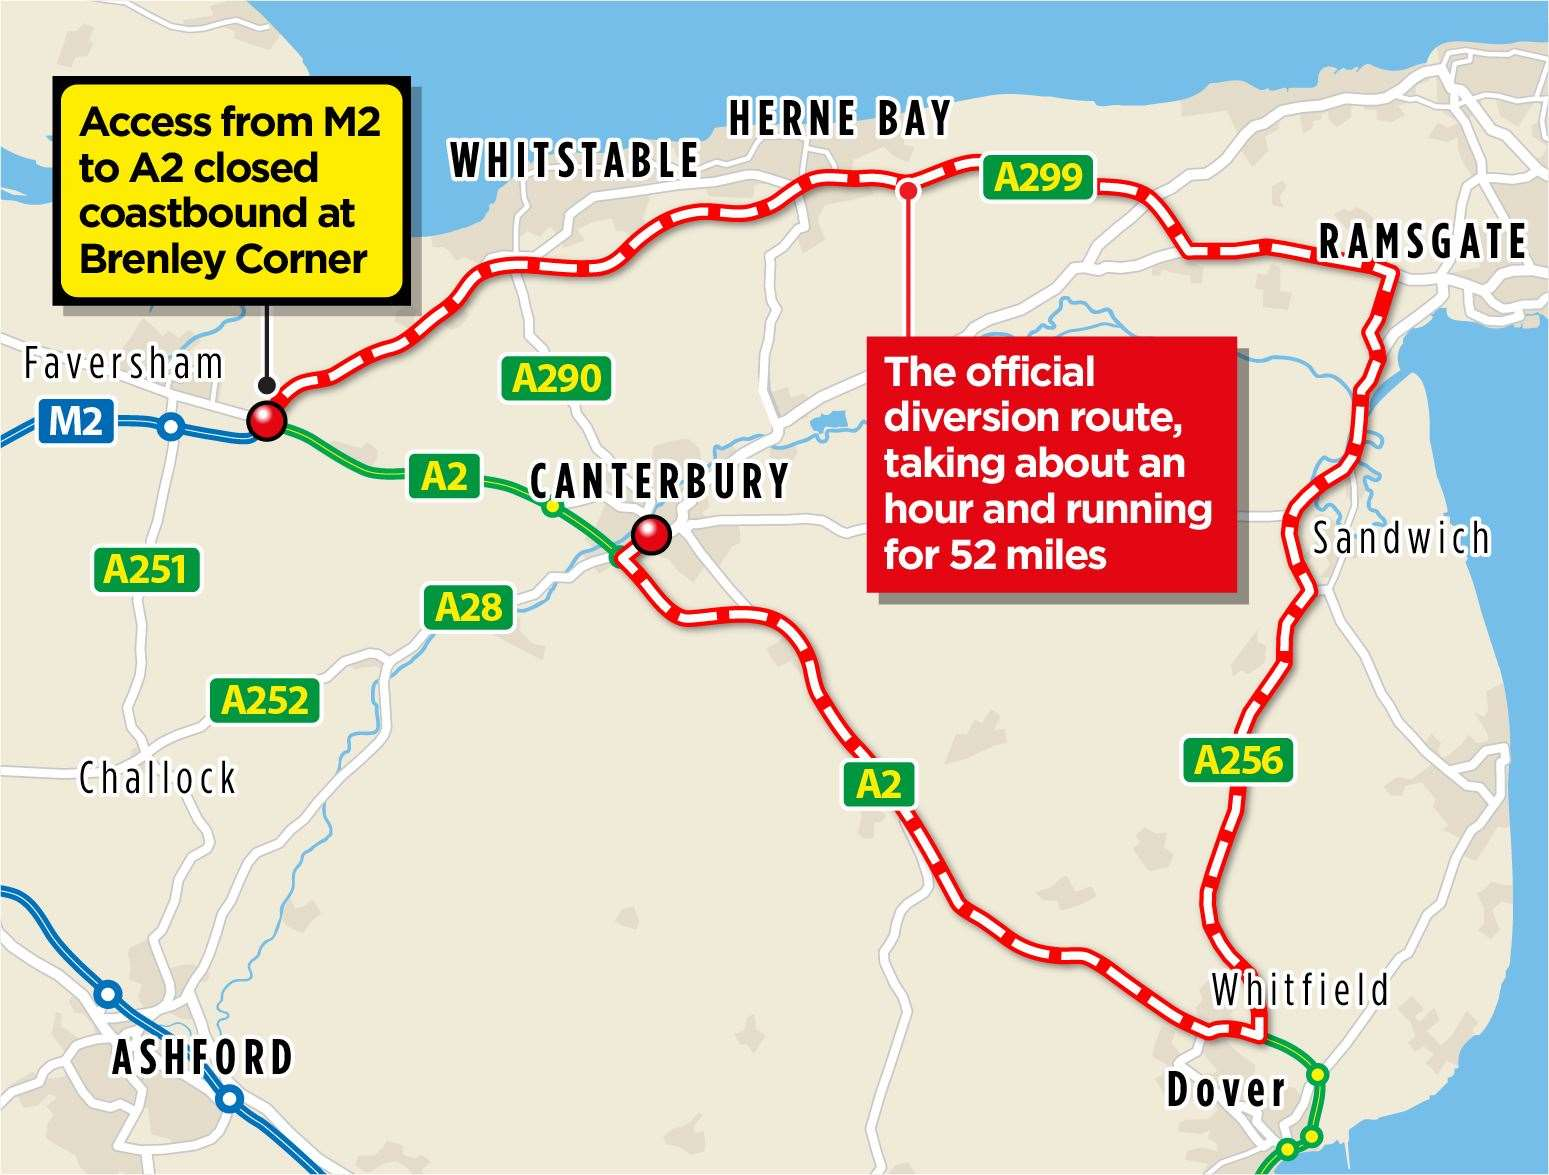 The official diversion route for those heading to Canterbury and Dover